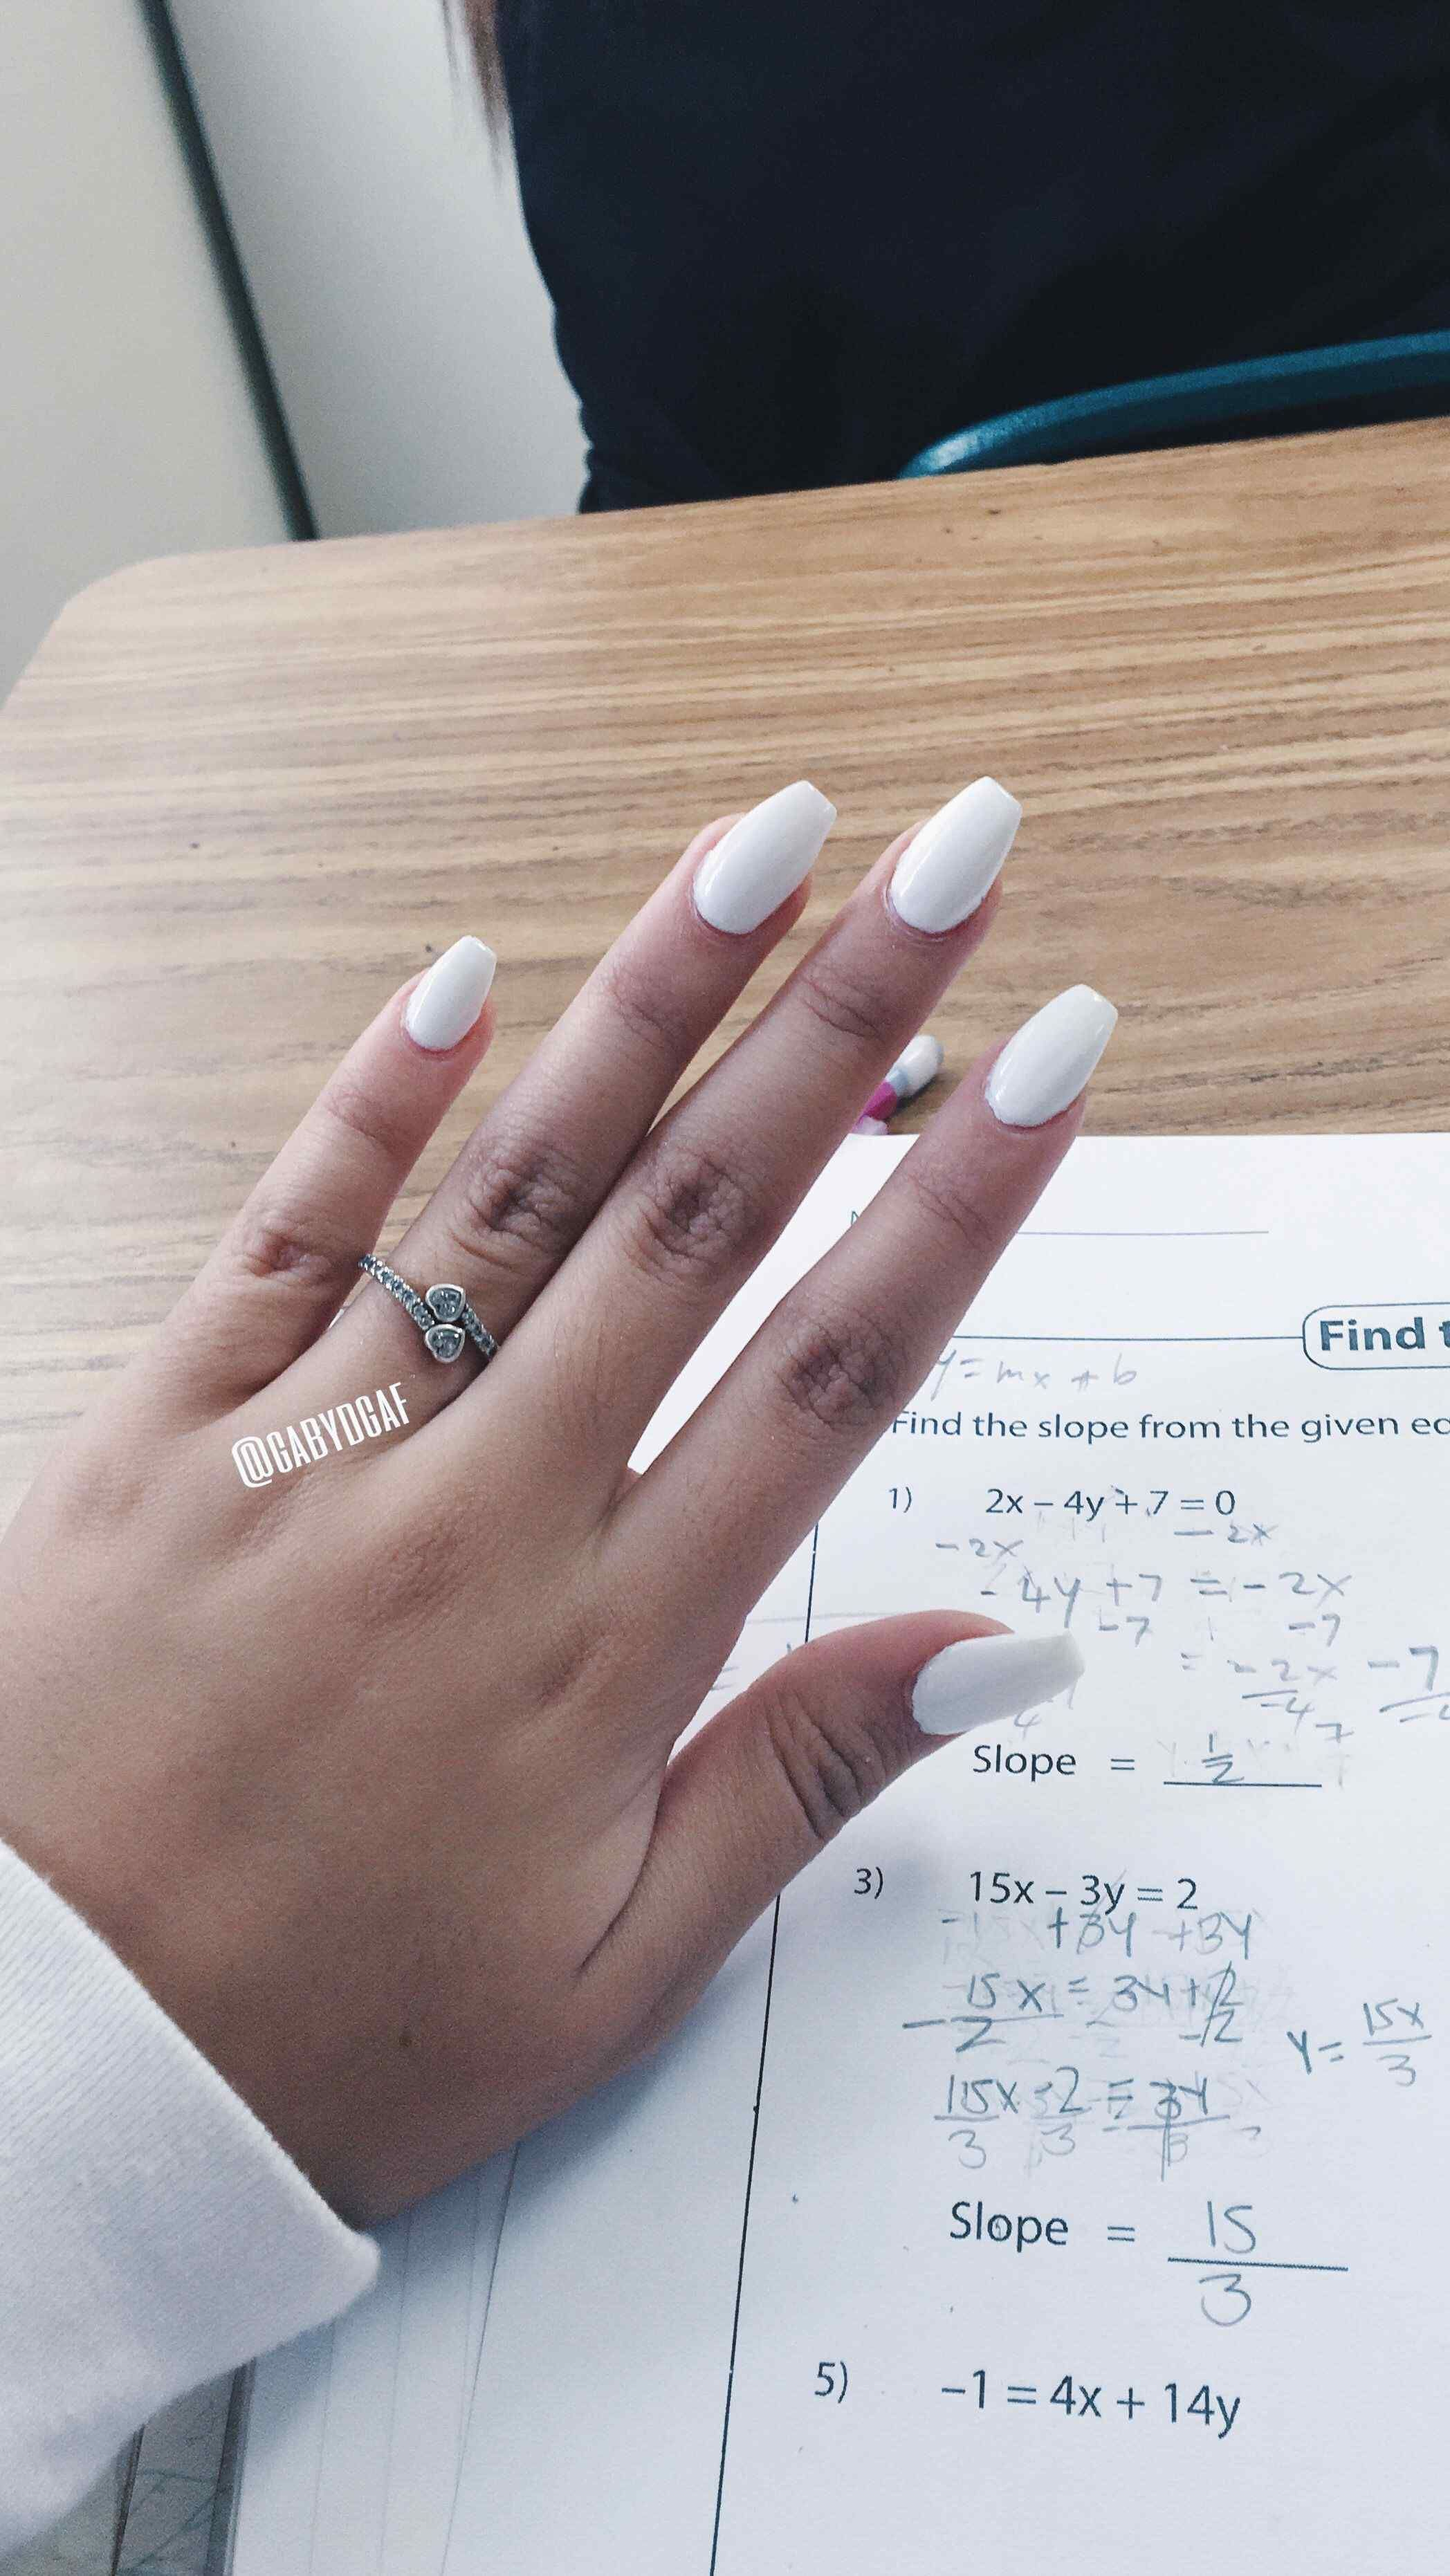 23 To consider For Luxury Fall Nails Acrylic Coffin Short